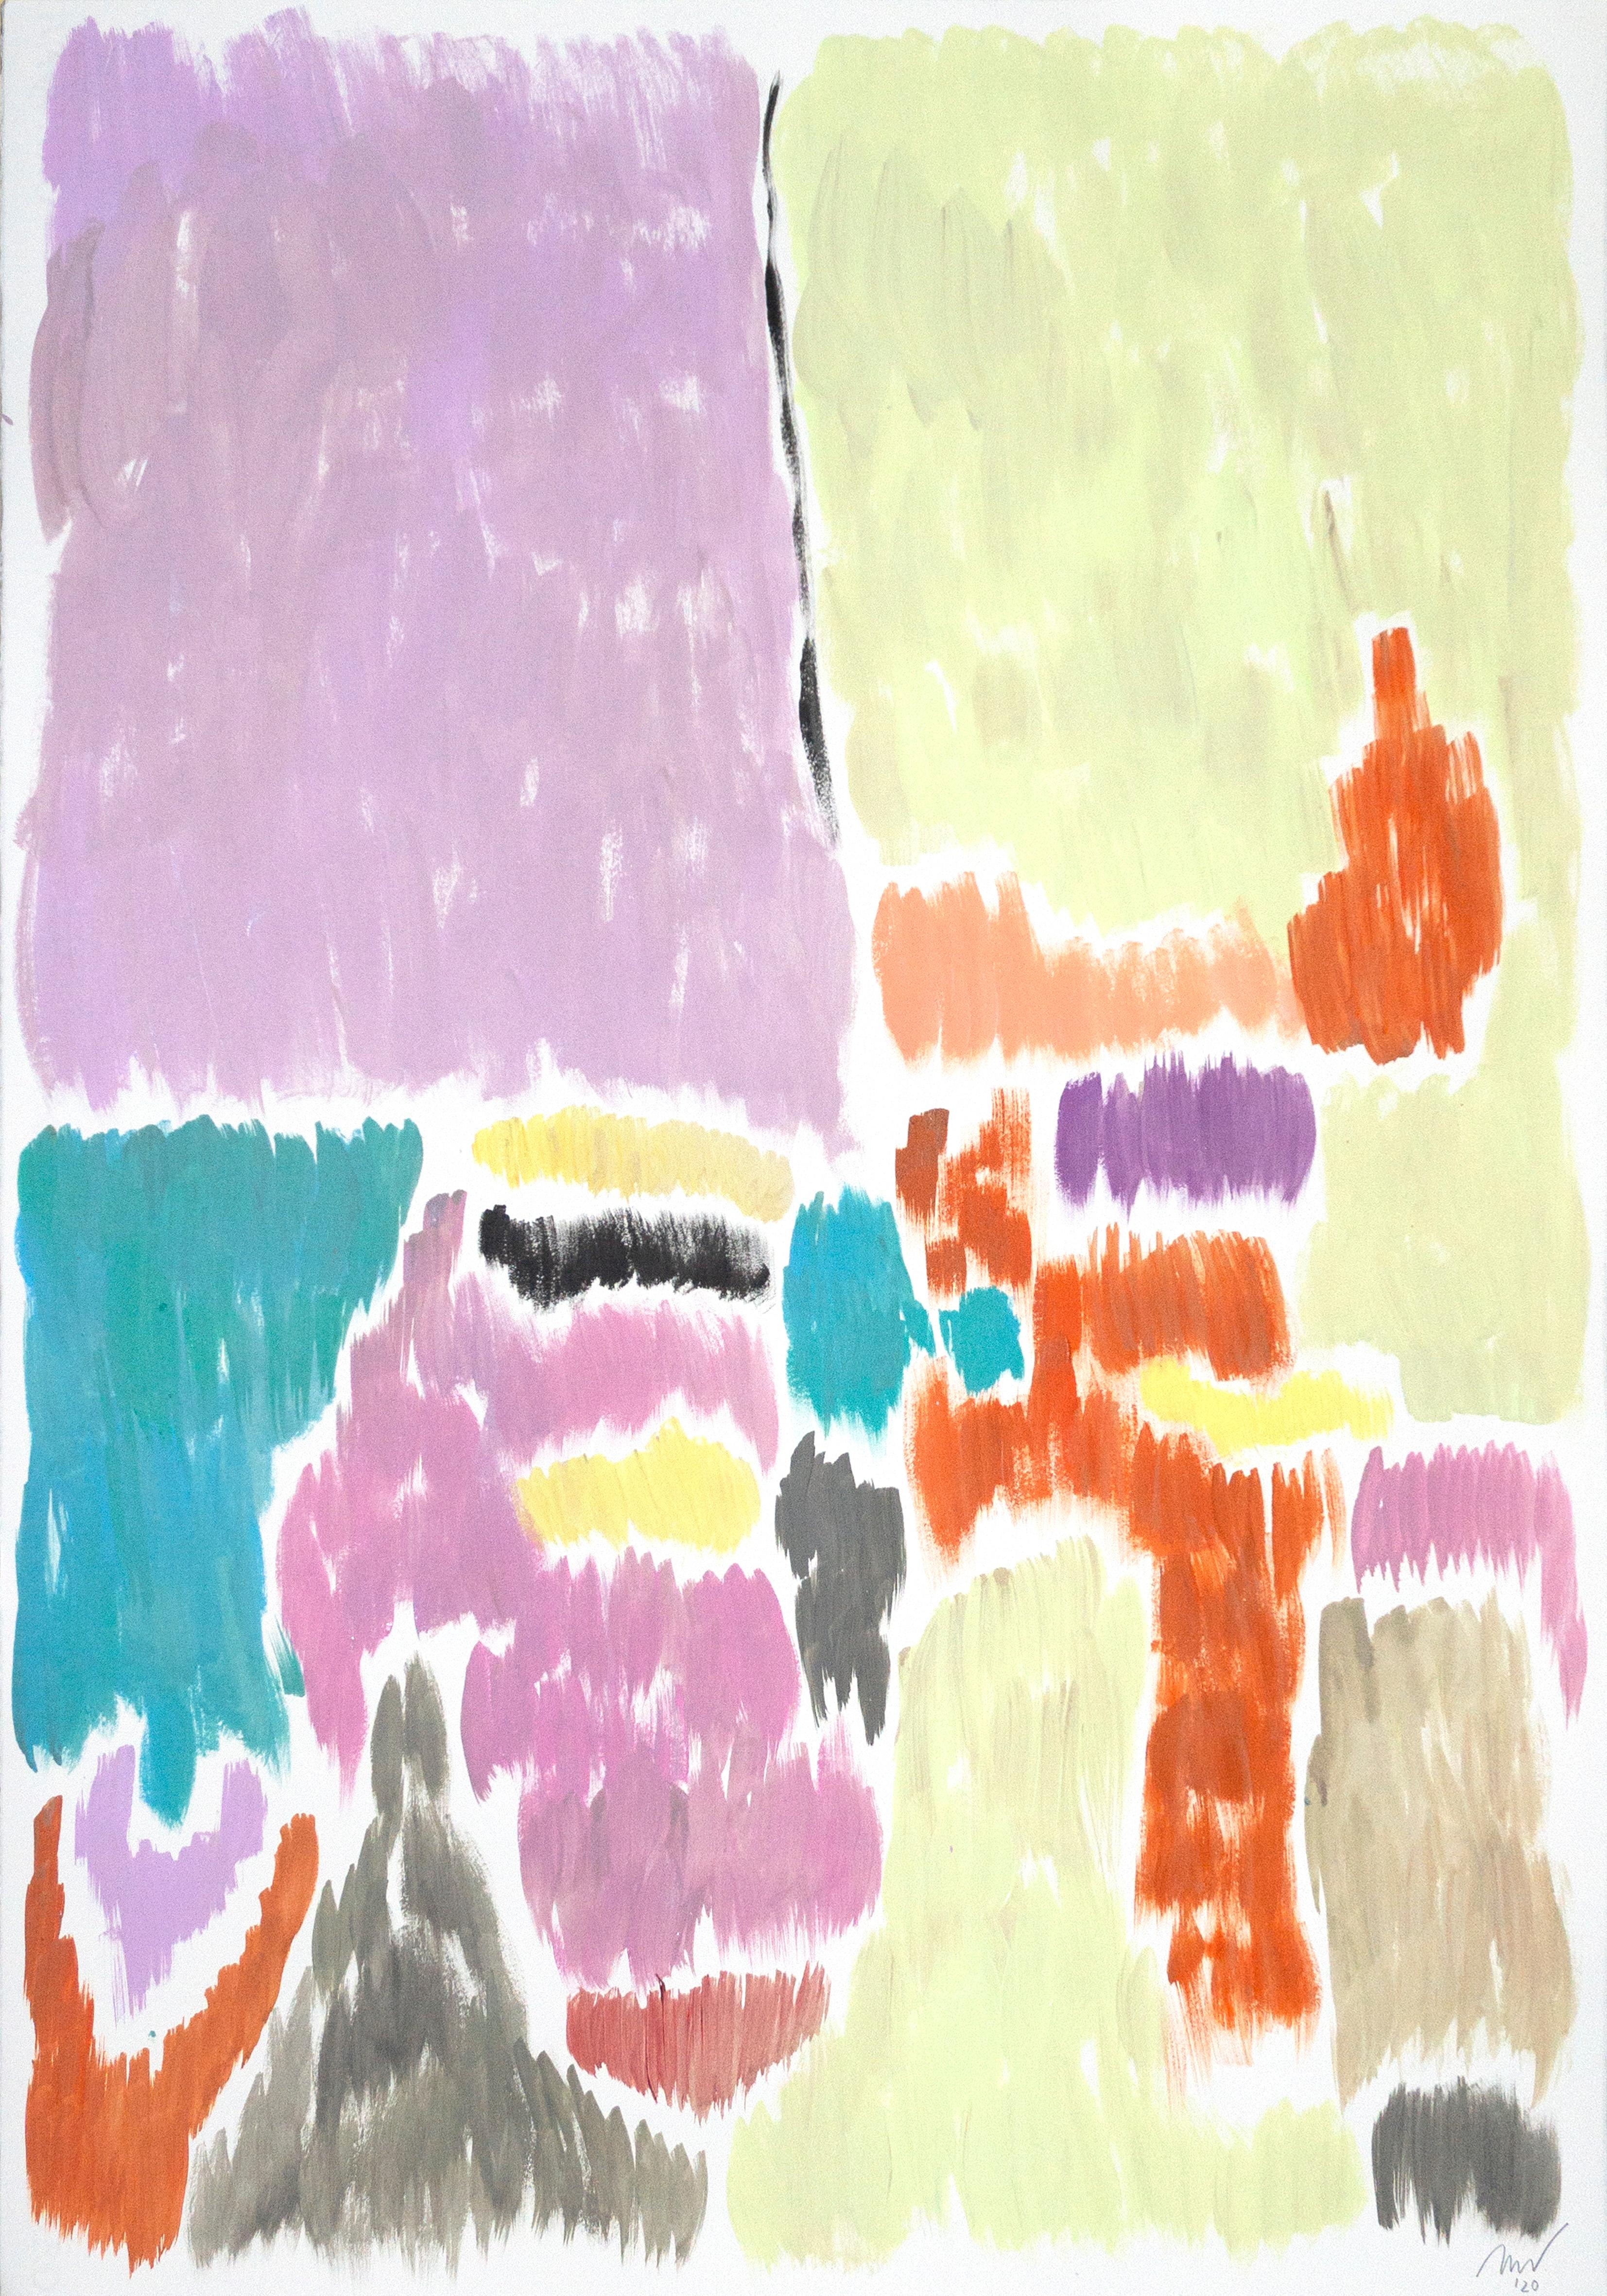 Pistachio and Mauve Blurry Interiors, Art Deco Painting, Abstract Pastel Tones